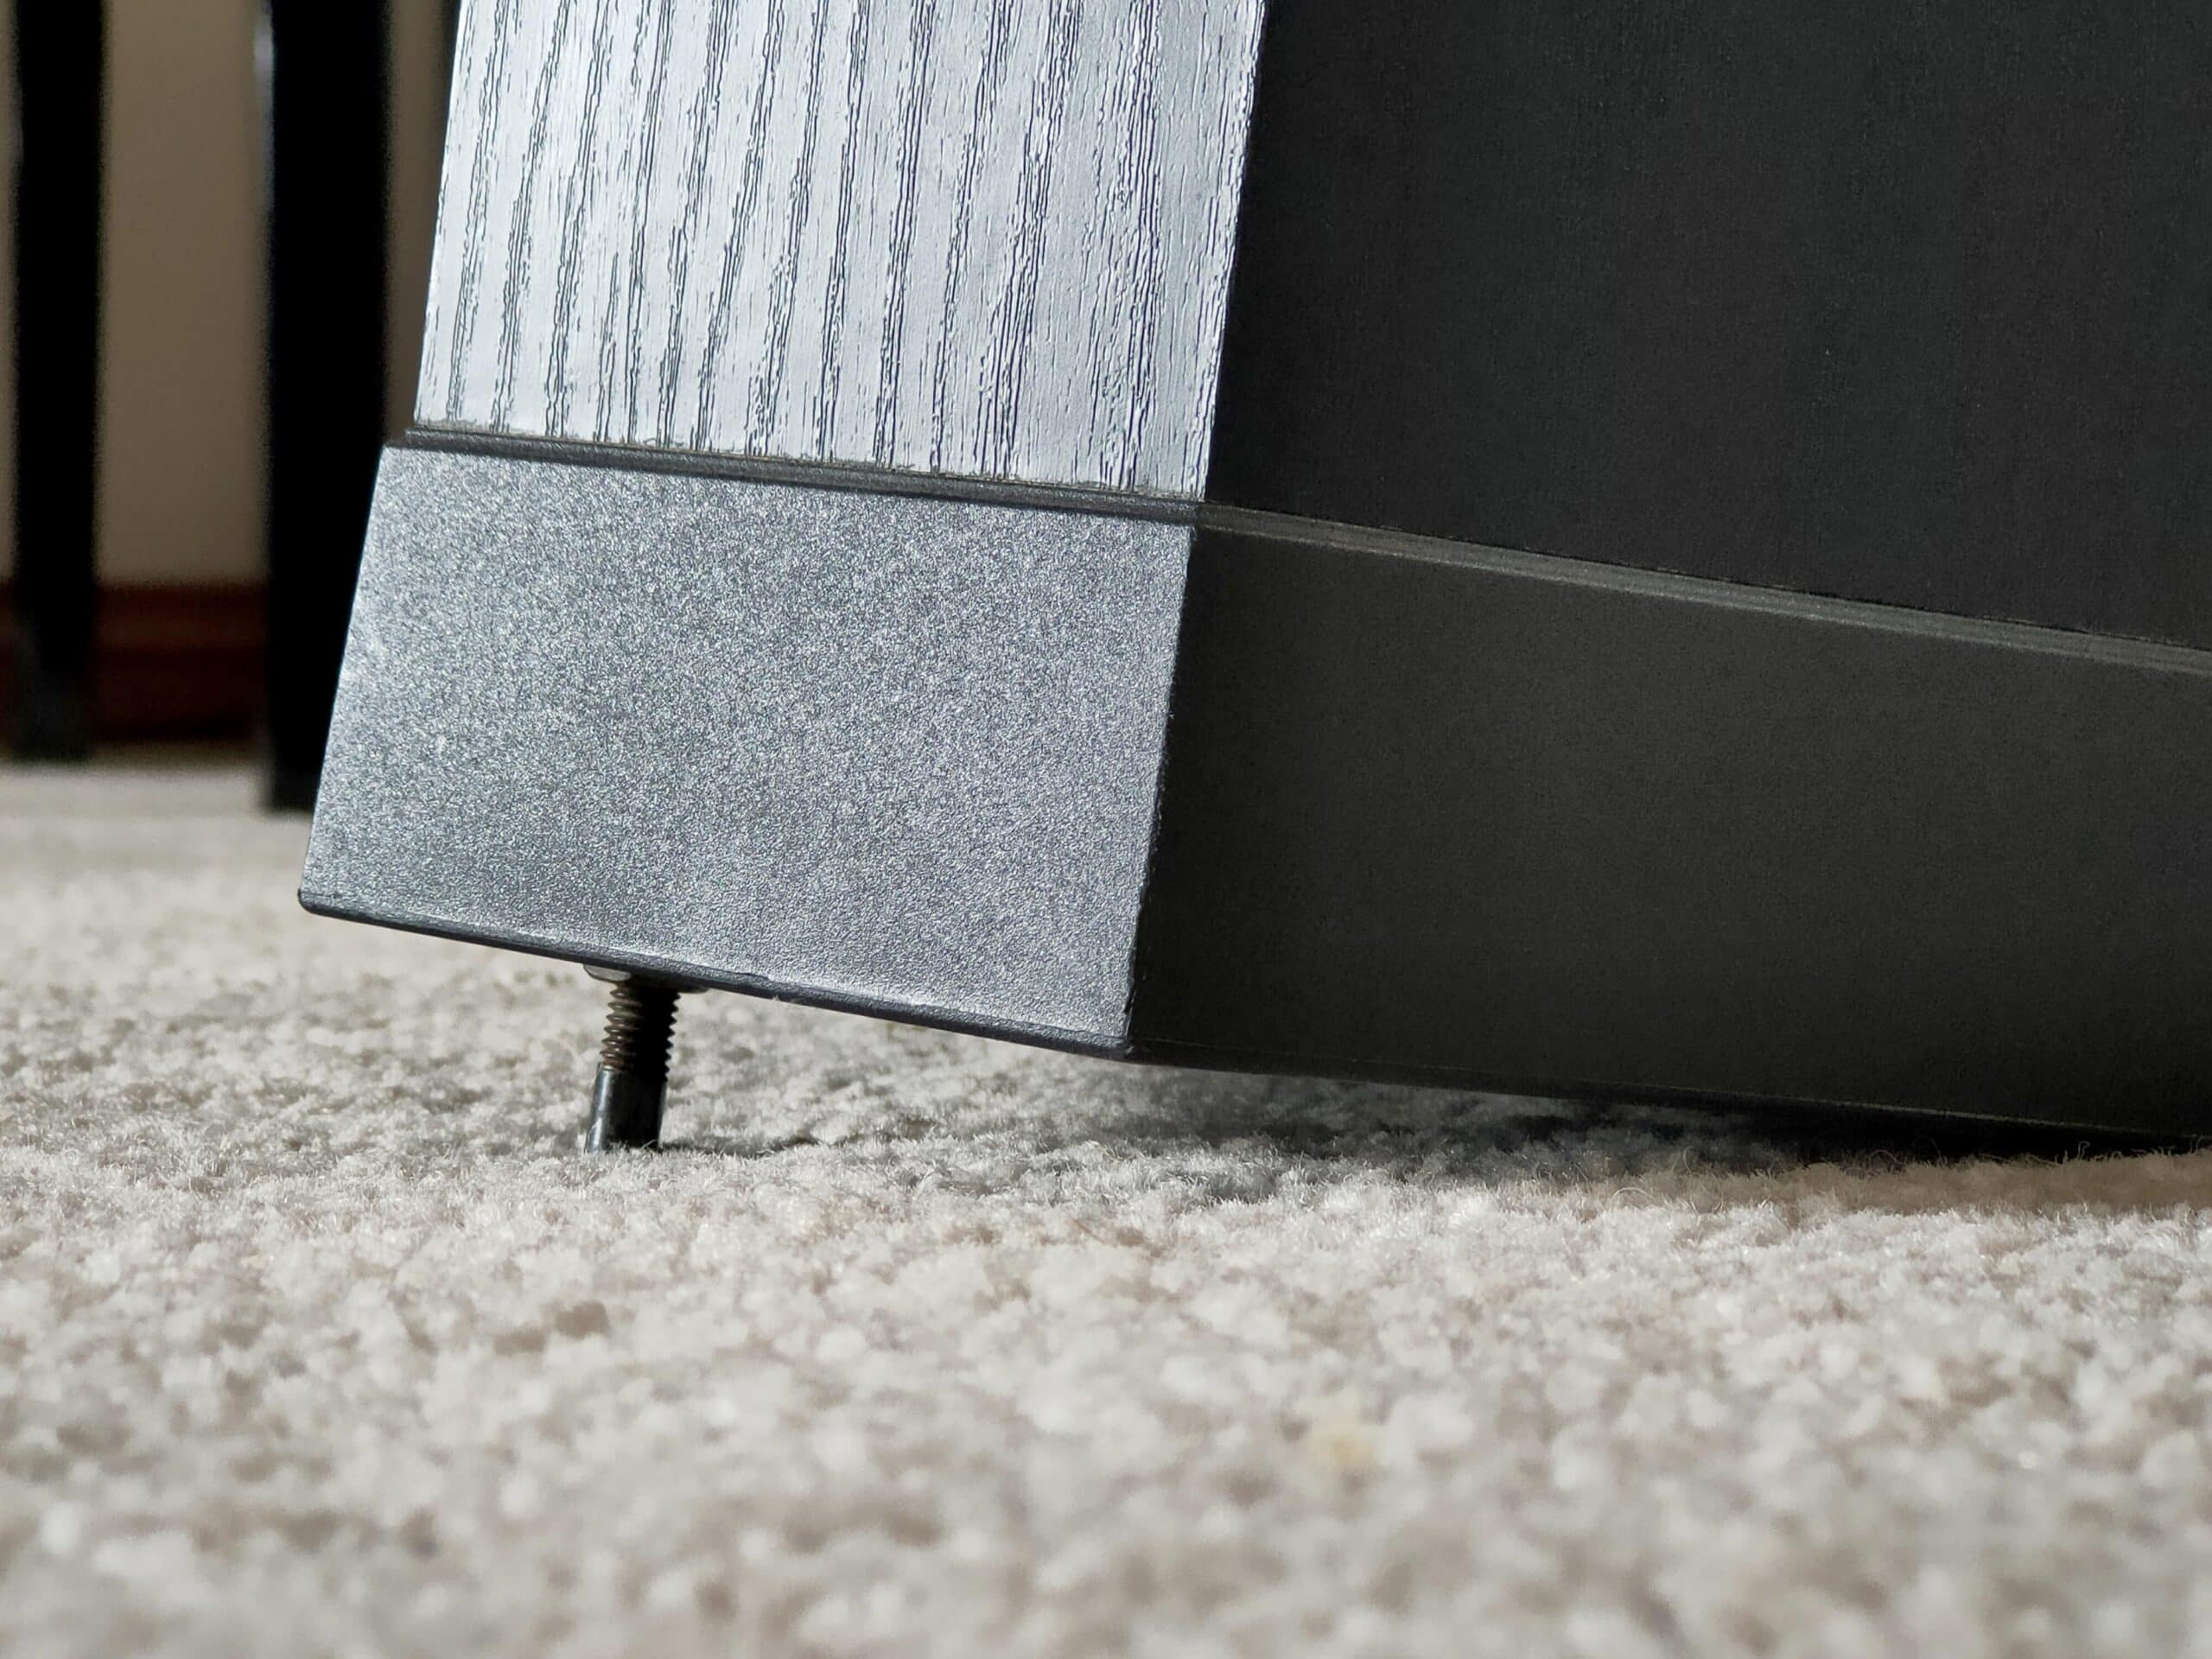 In some cases, tilting speakers back can yield sonic improvement.